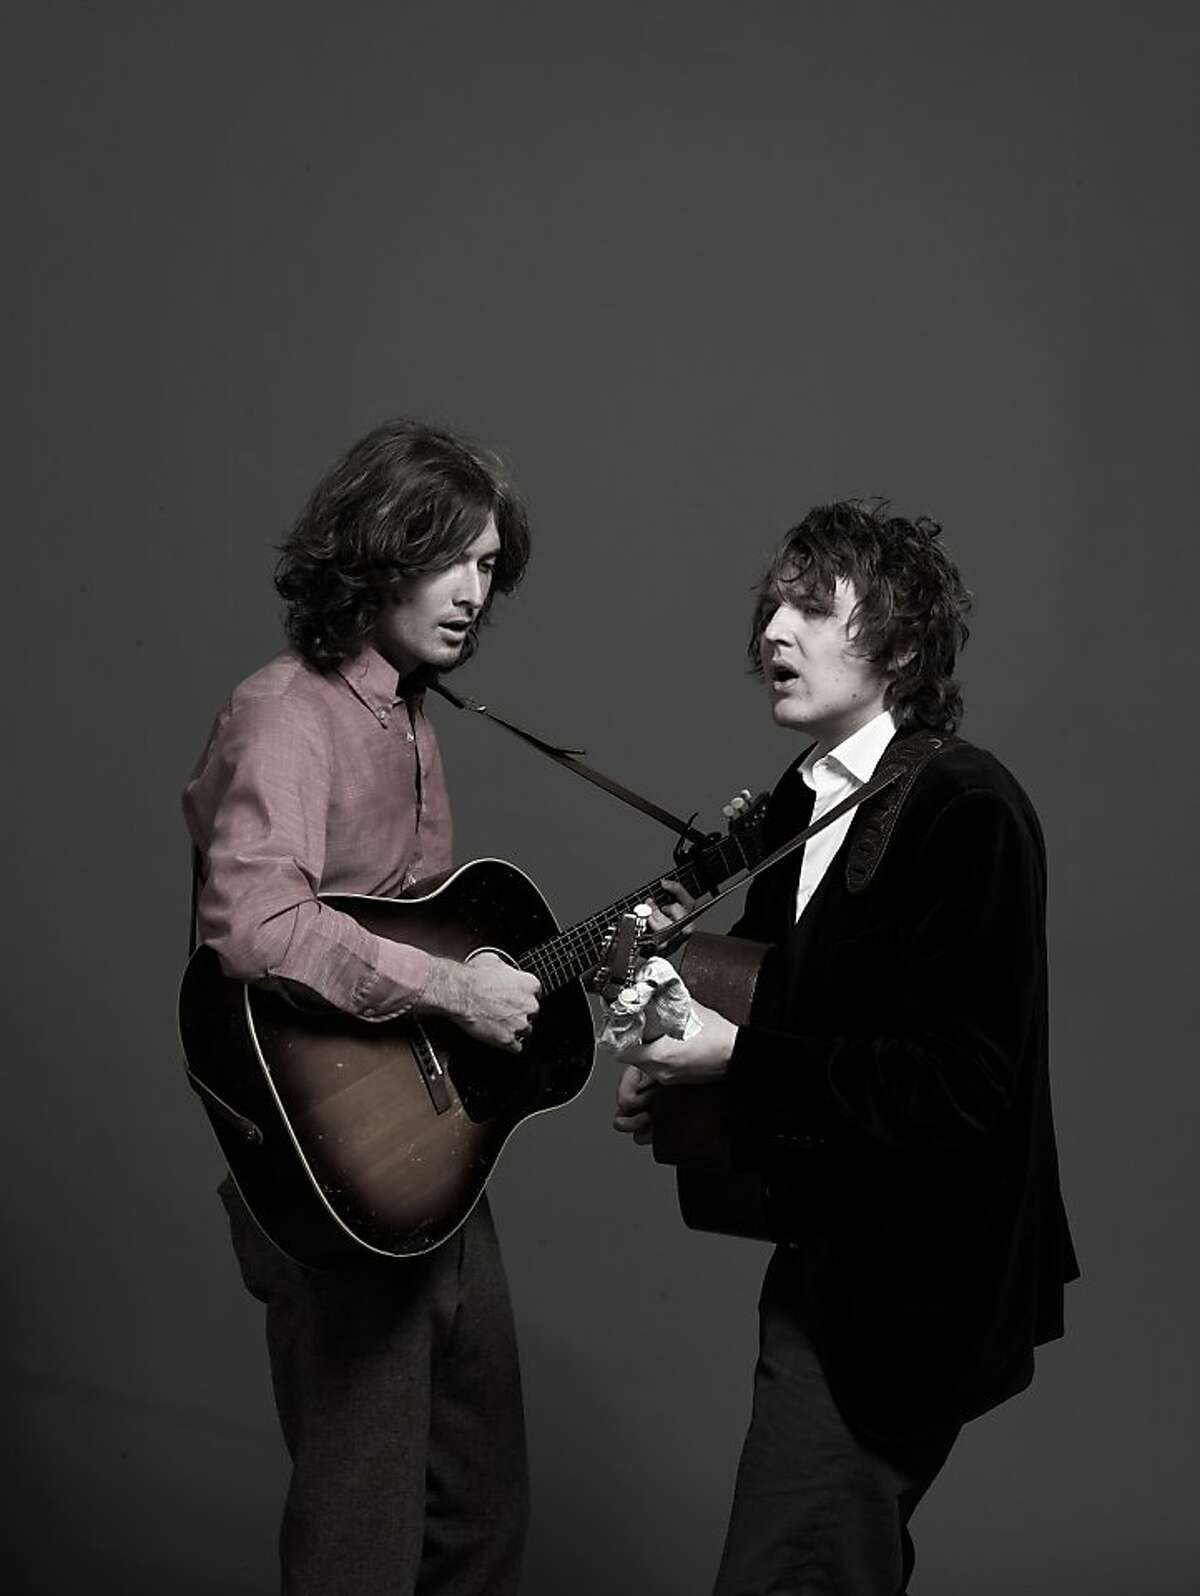 Joey Ryan (l) and Kenneth Pattengale (r) of the Milk Carton Kids.